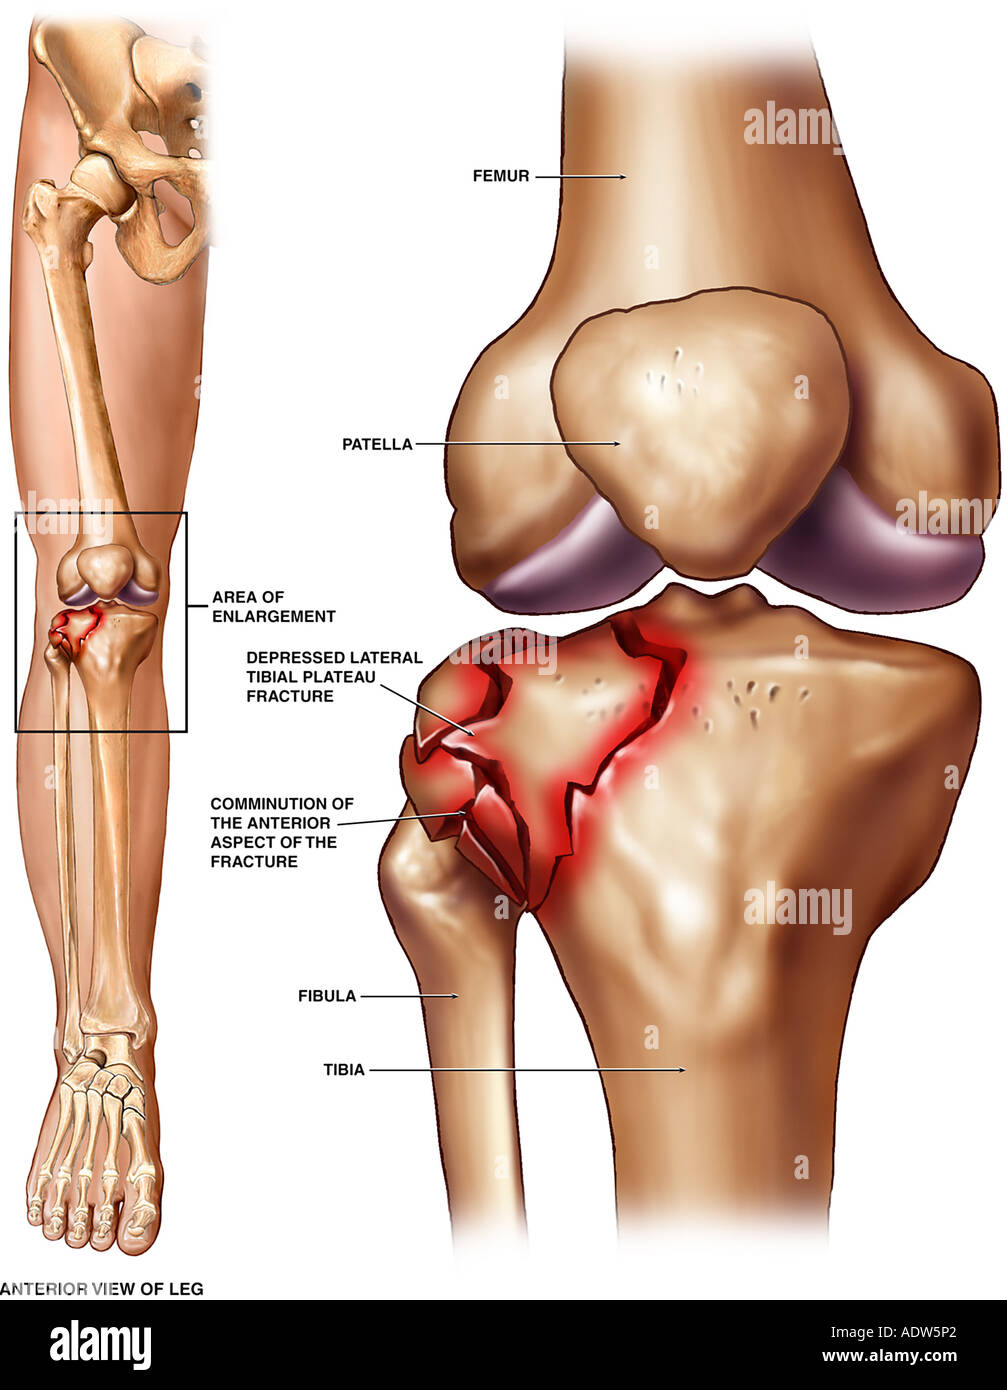 Tibial Plateau Fracture Stock Photo, Royalty Free Image: 7712033 - Alamy